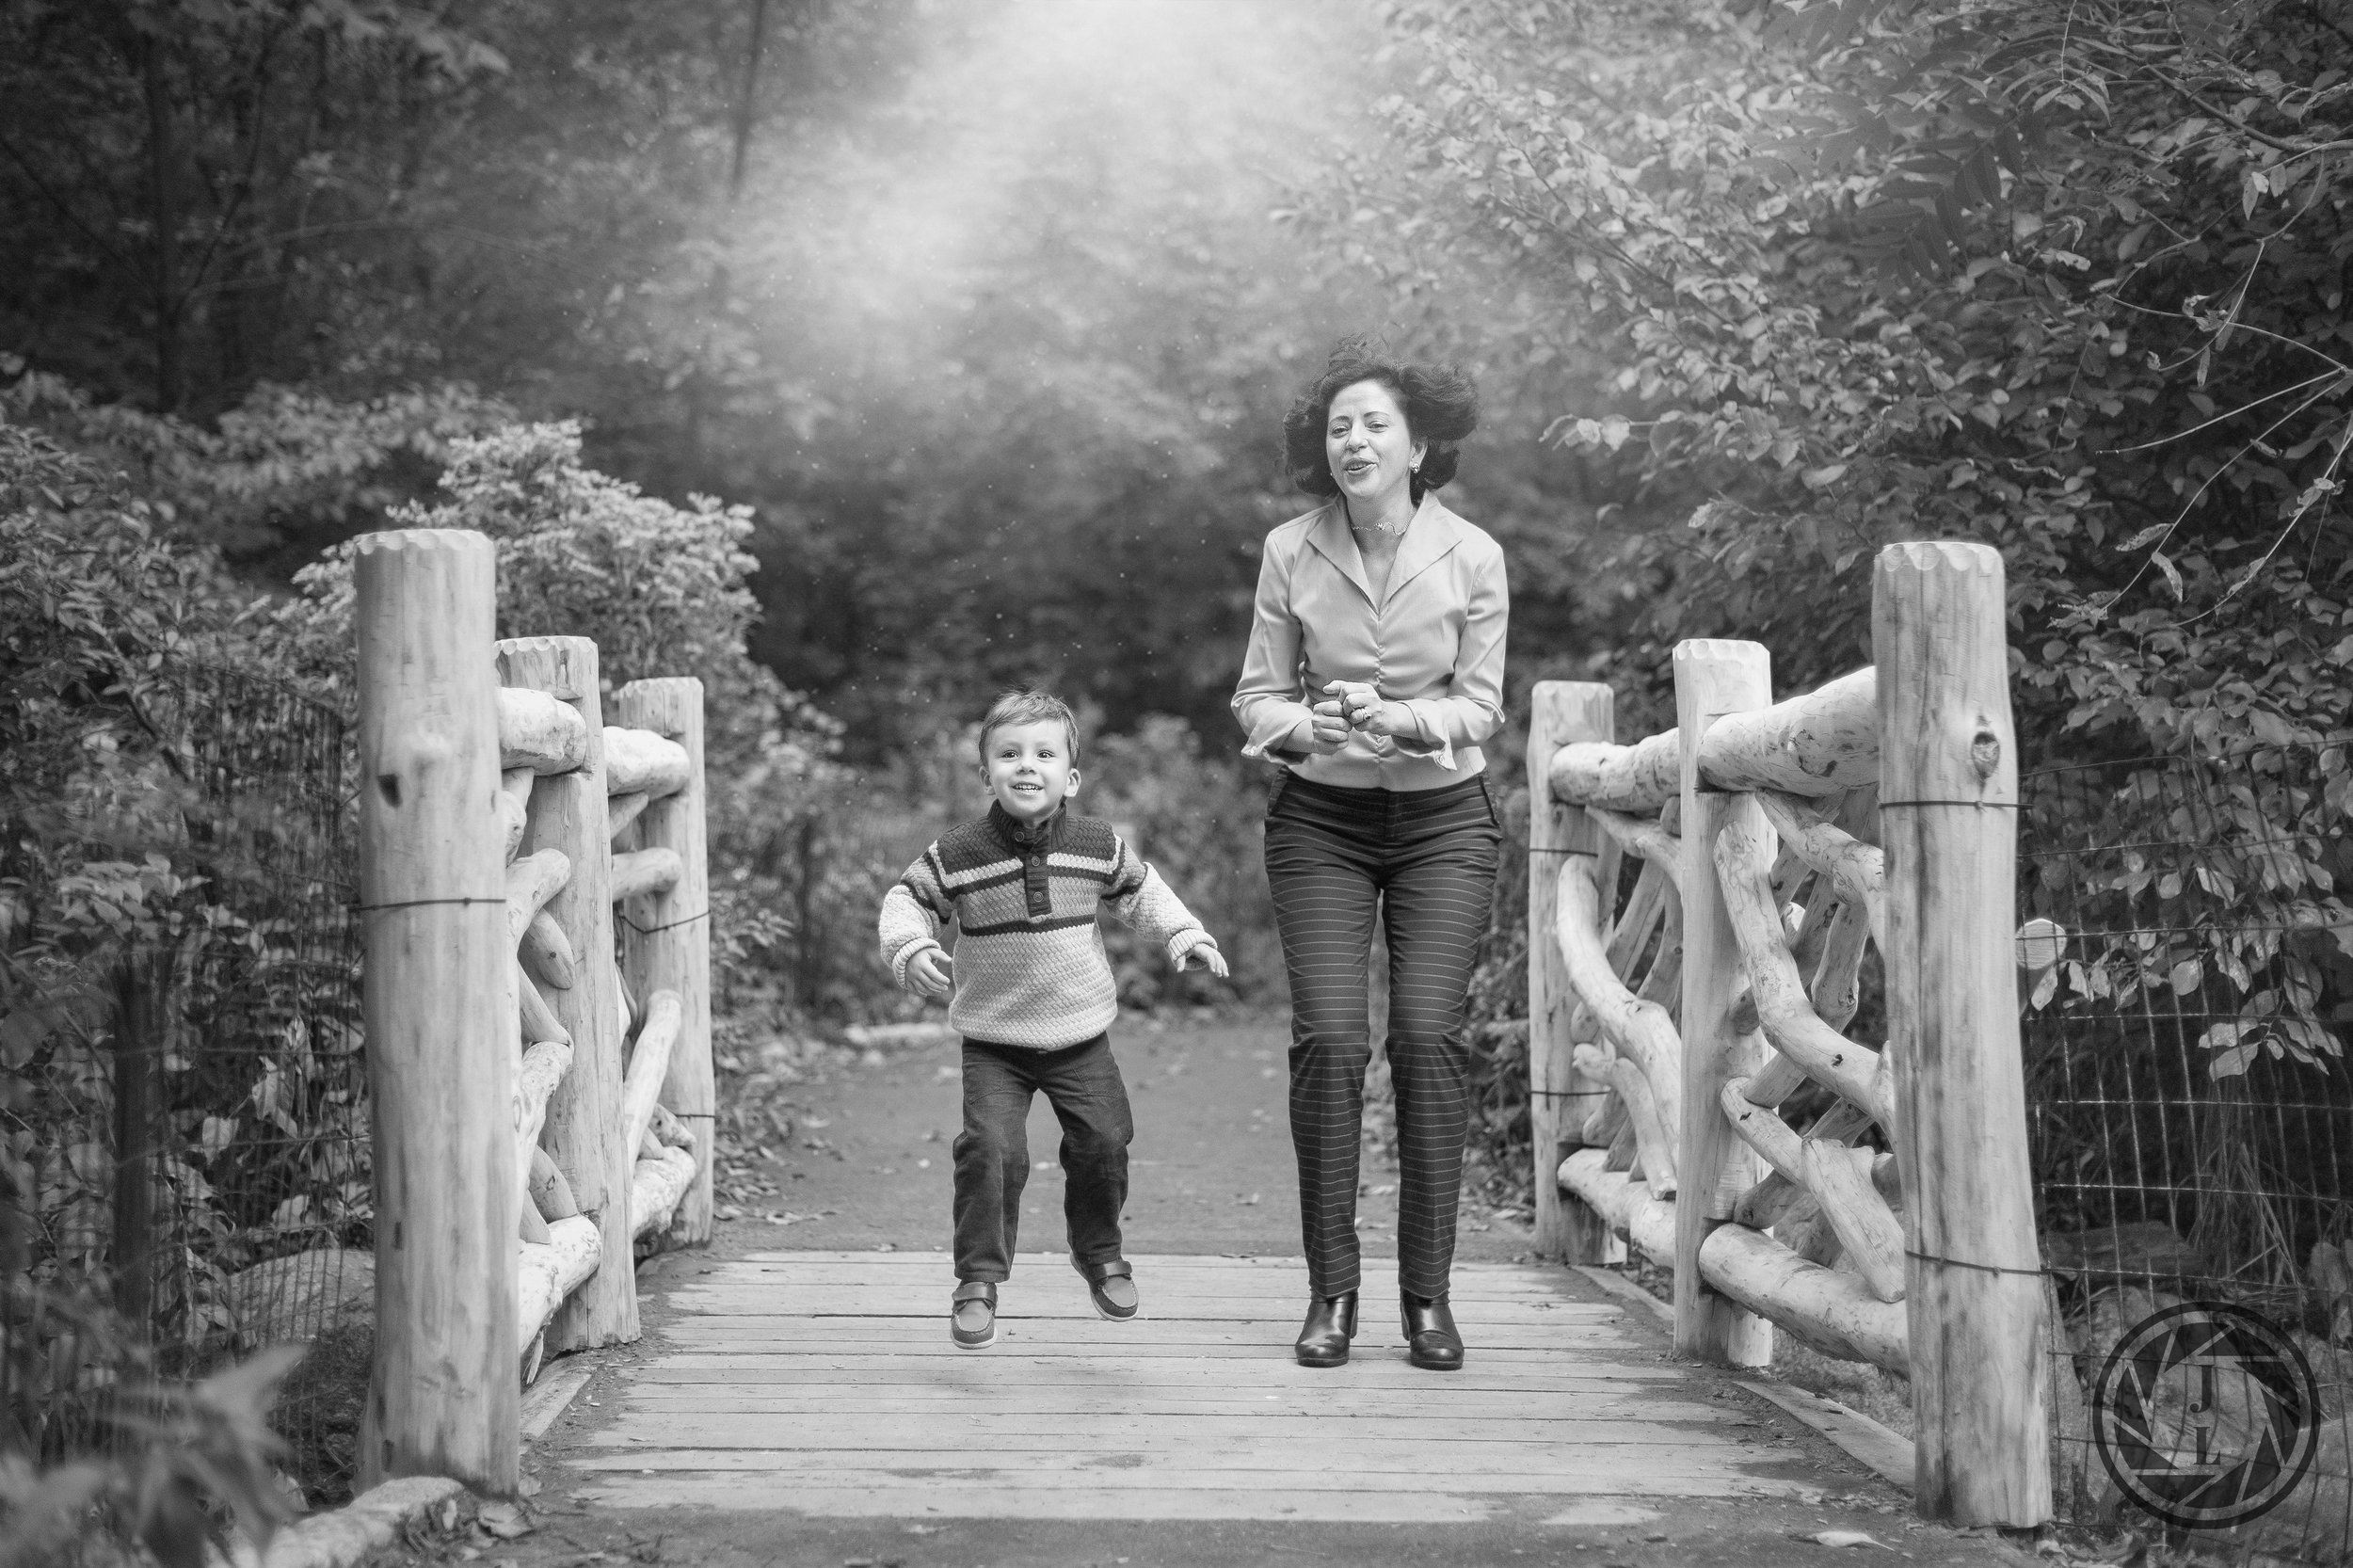 black and white image of mother and sun jumping up in the air on a wooden bridge